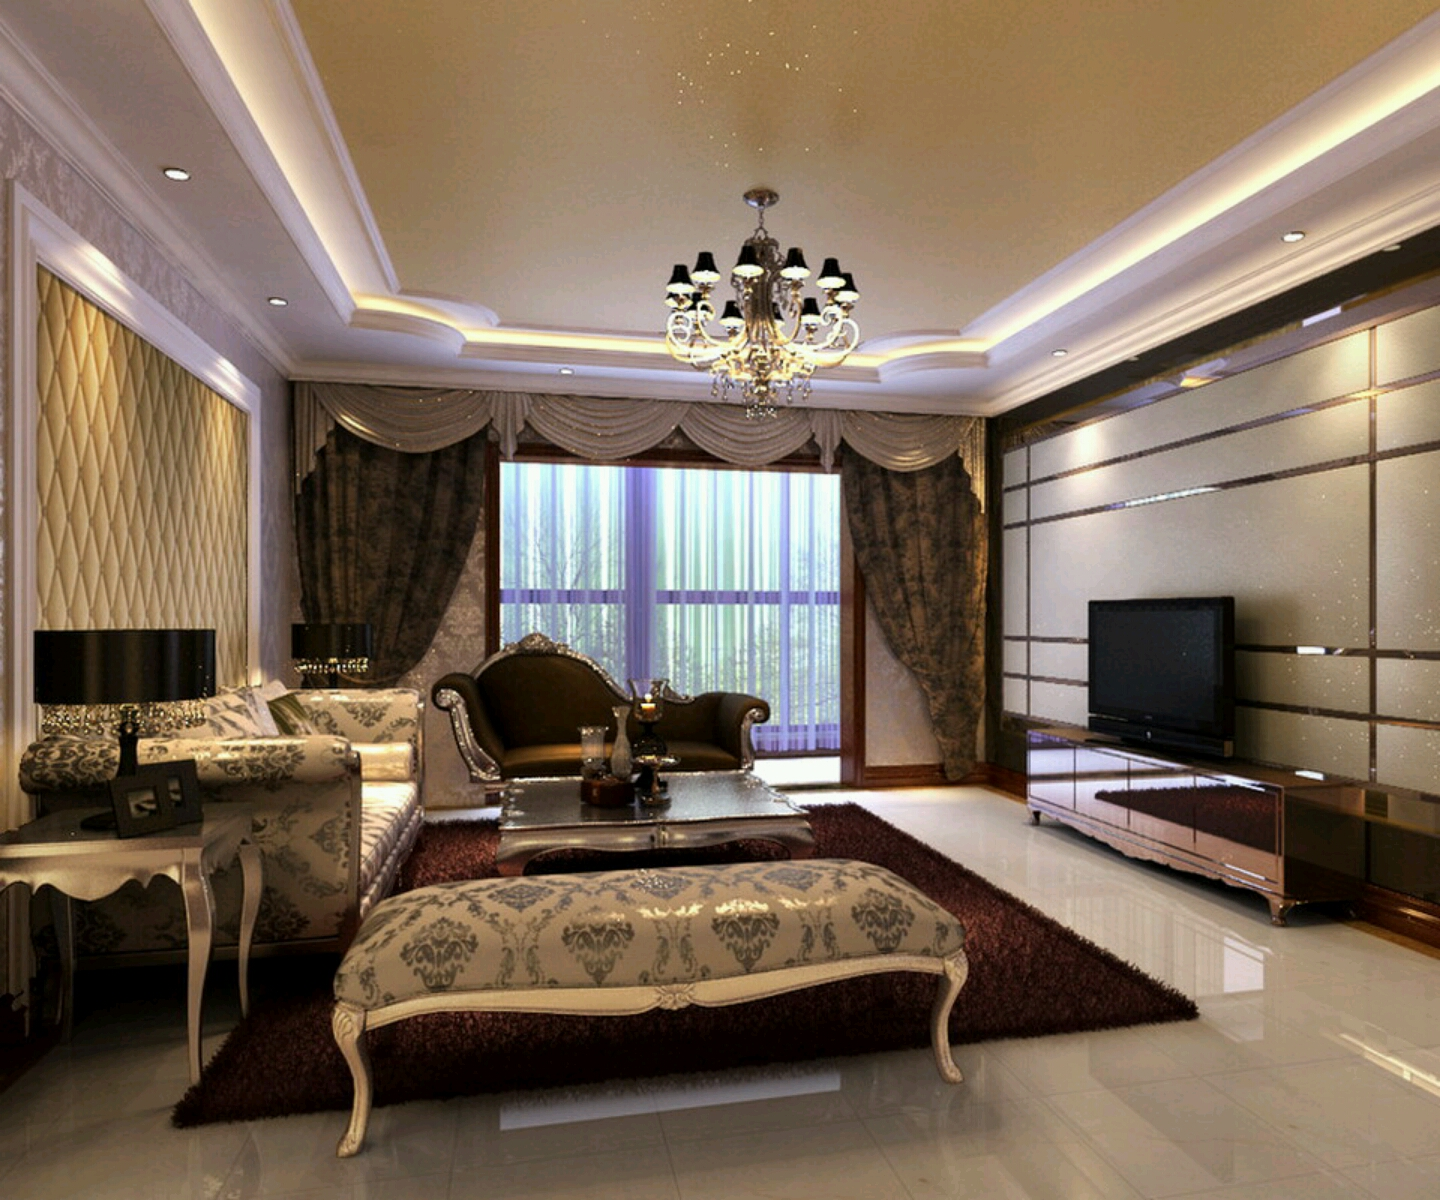 Interior decorating ideas living rooms dream house for Interior decoration for living room